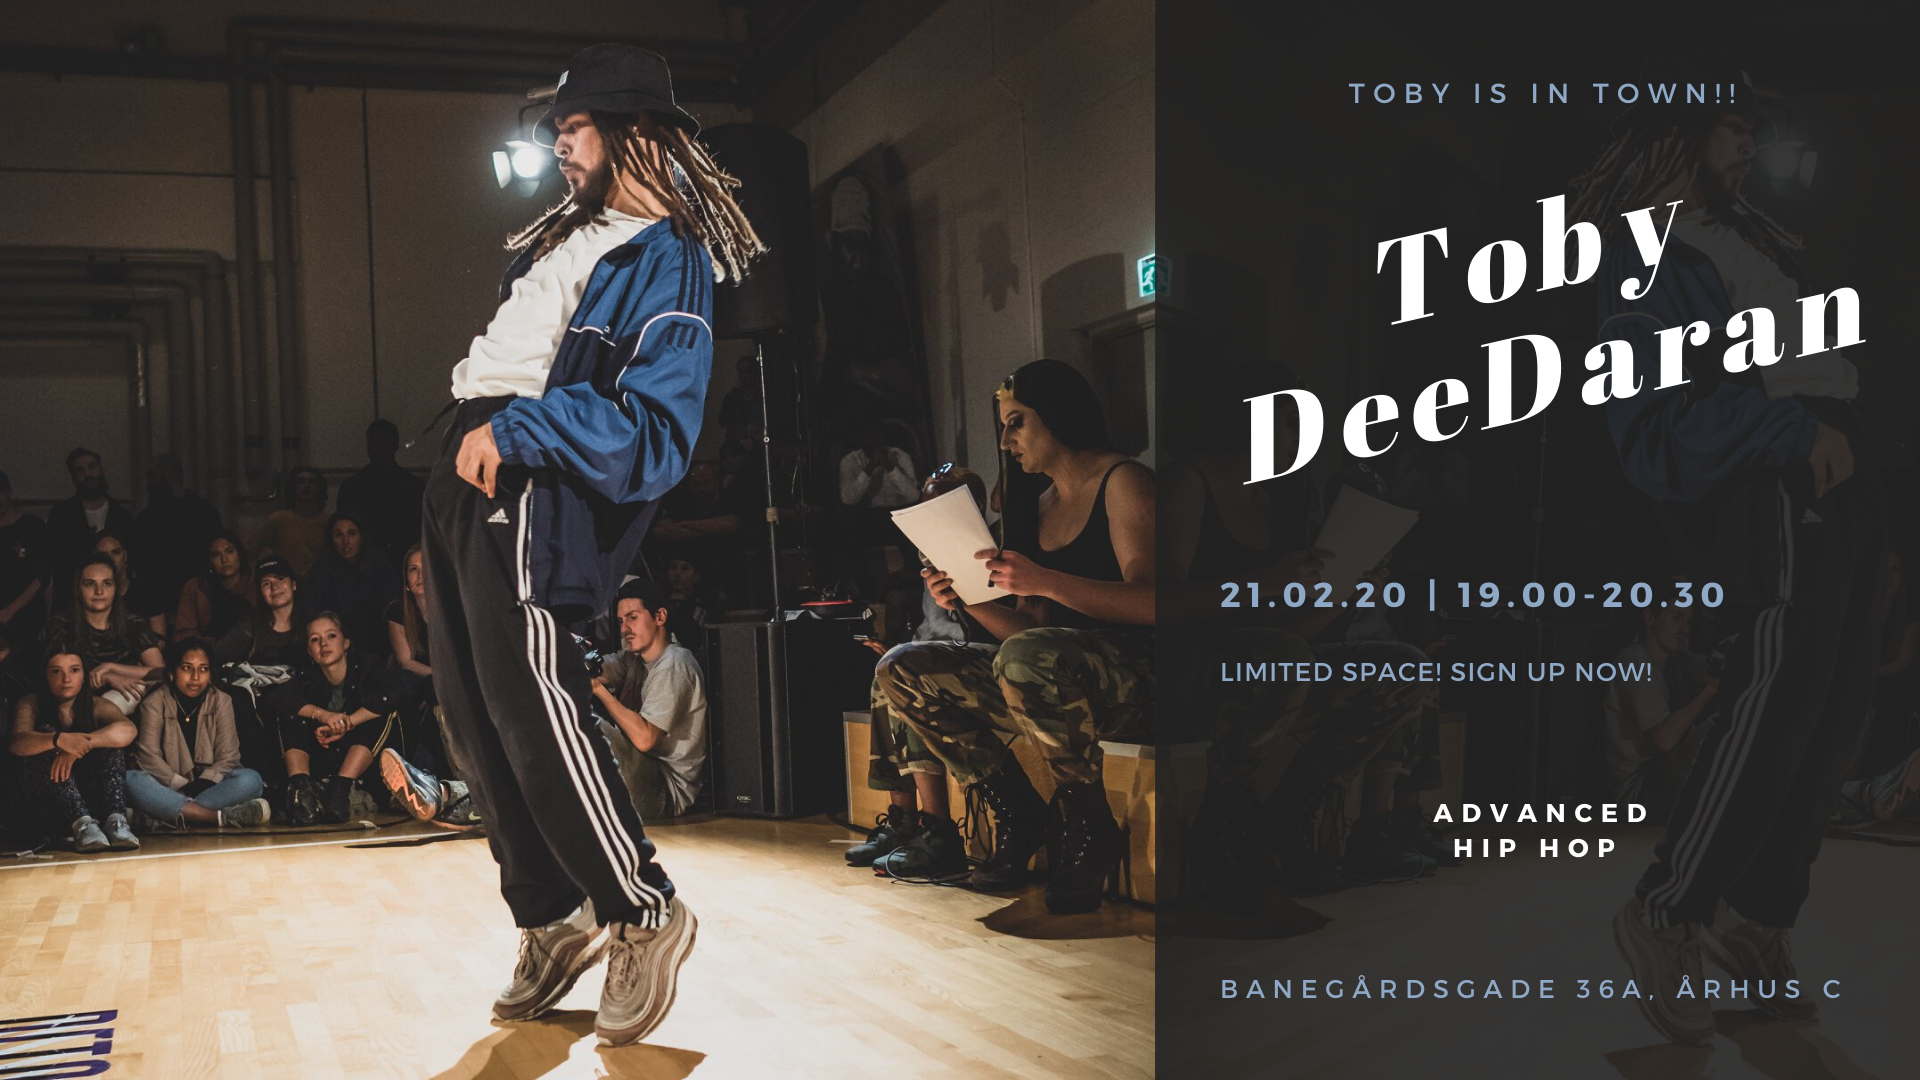 Workshop x Toby Deedaran